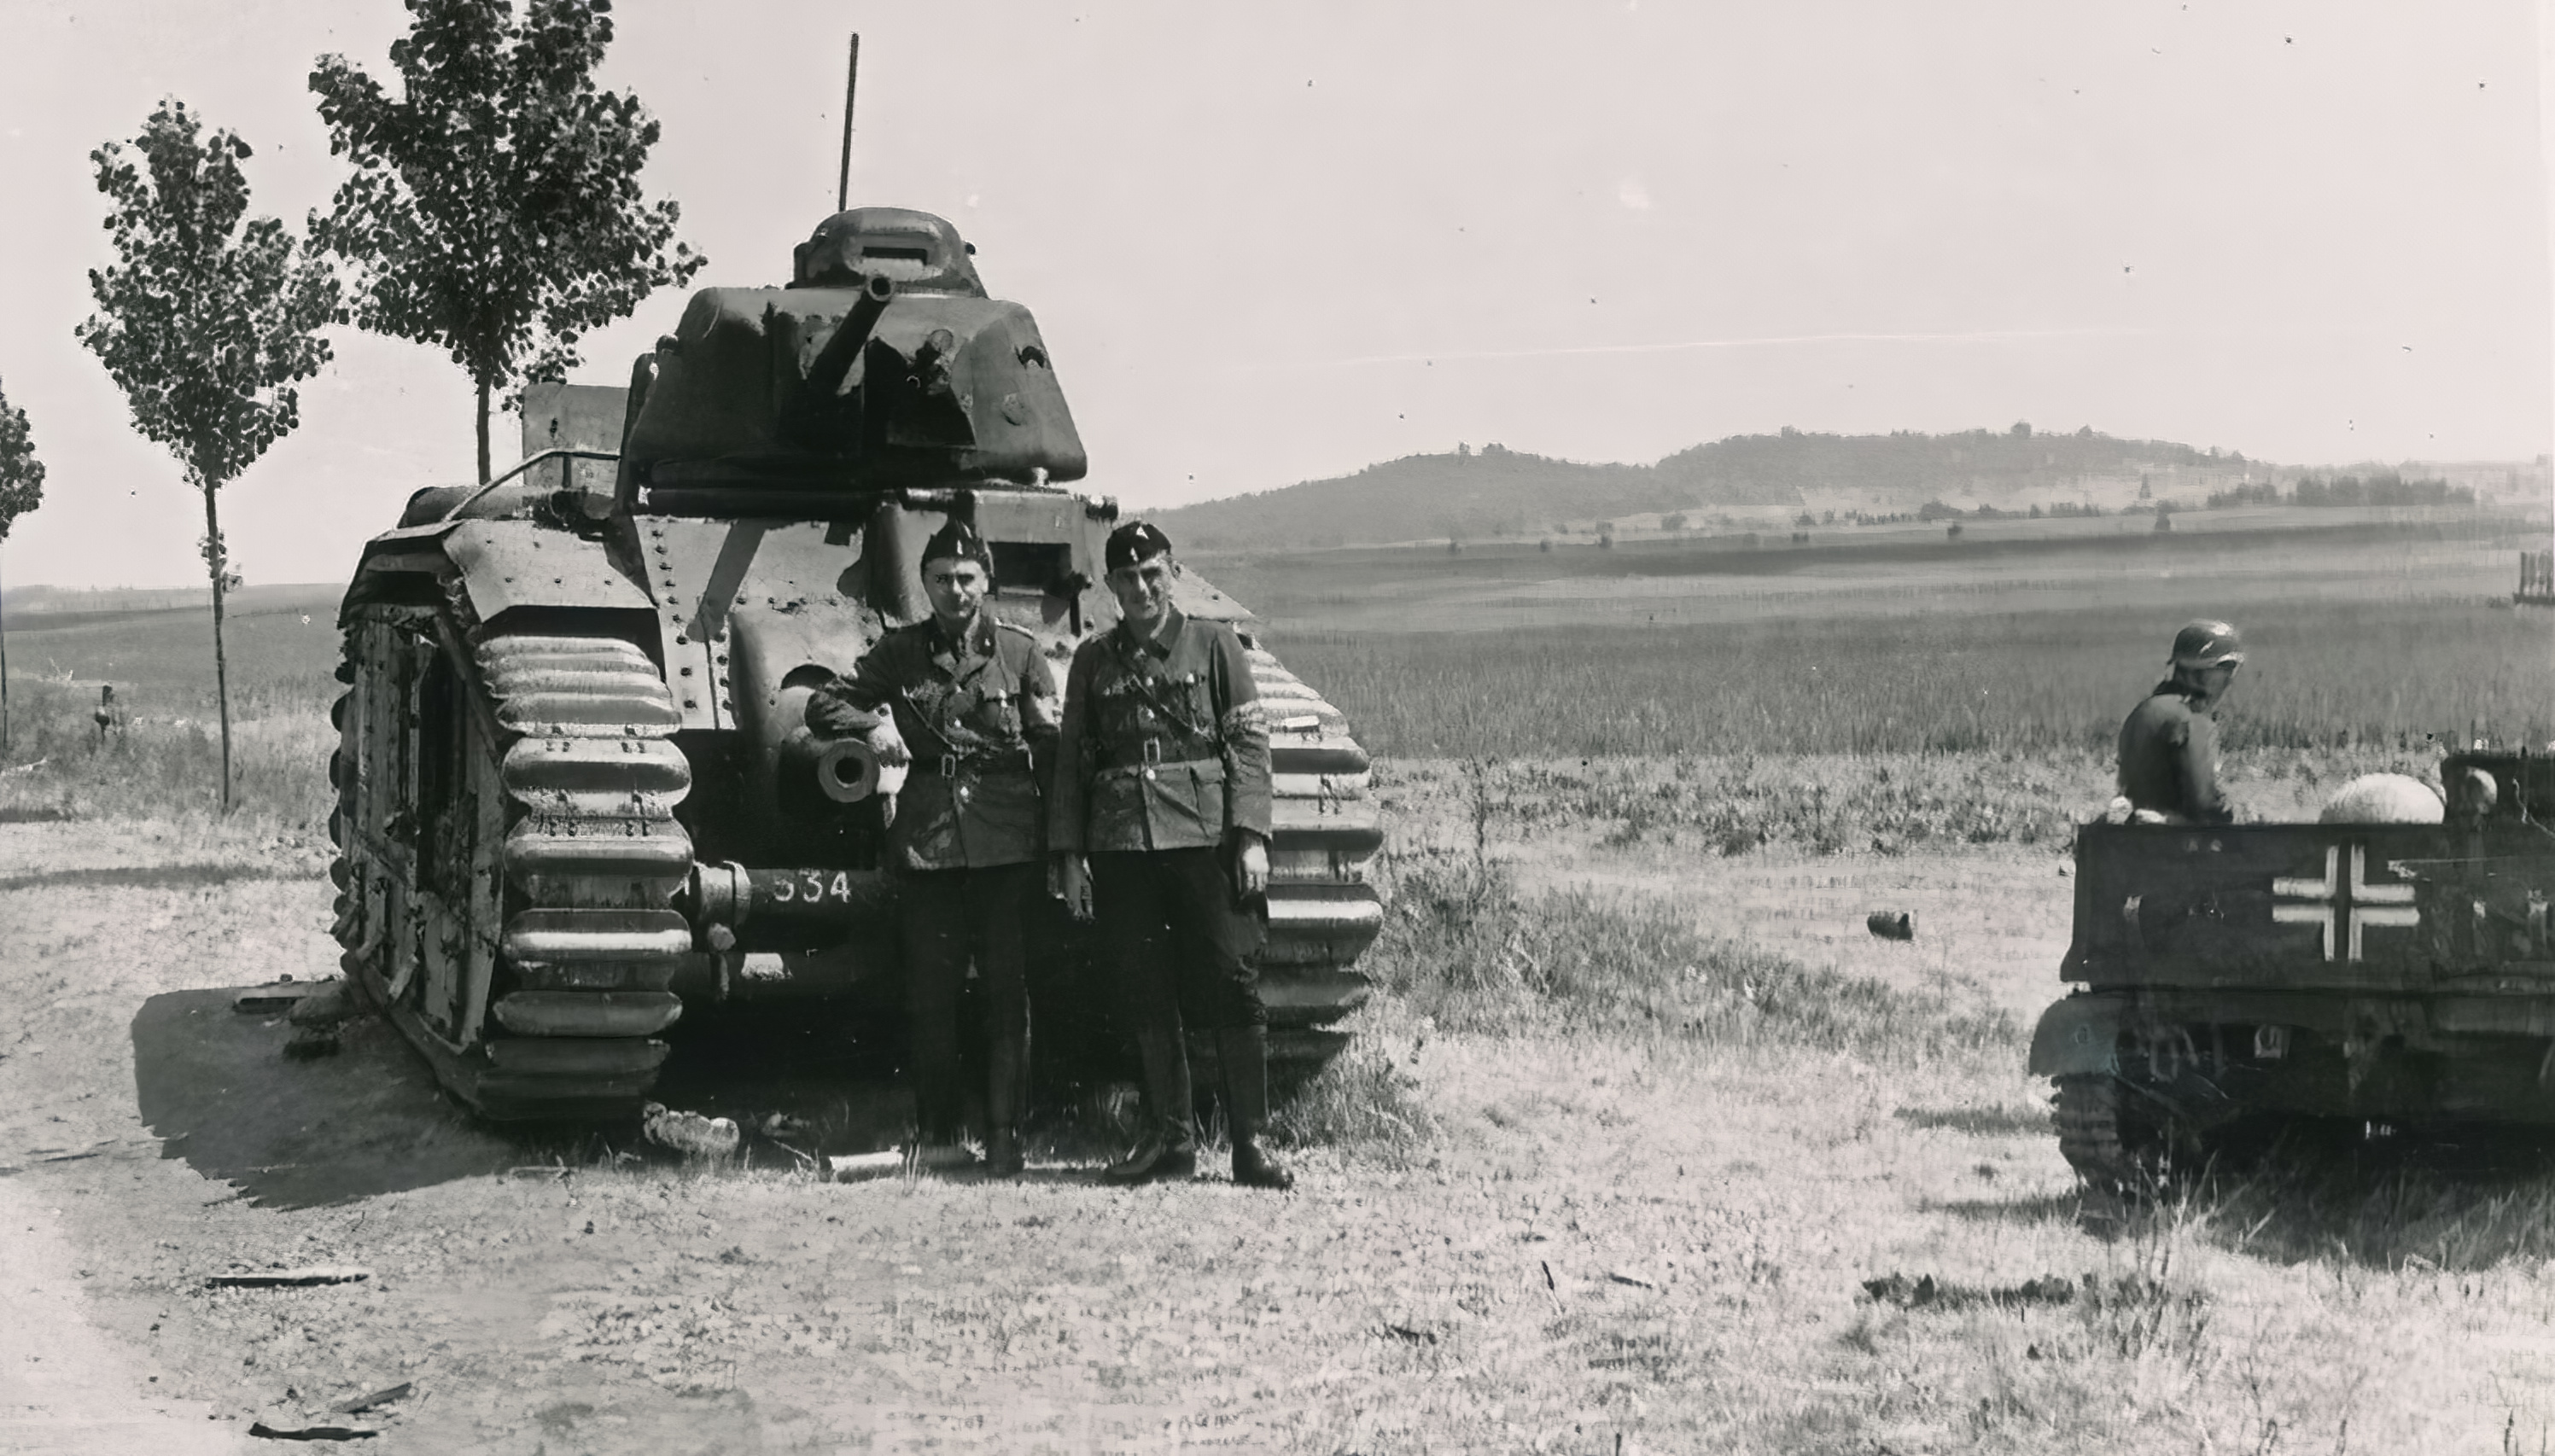 French Army Renault Char B1 captured during the battle of France 1940 ebay 03